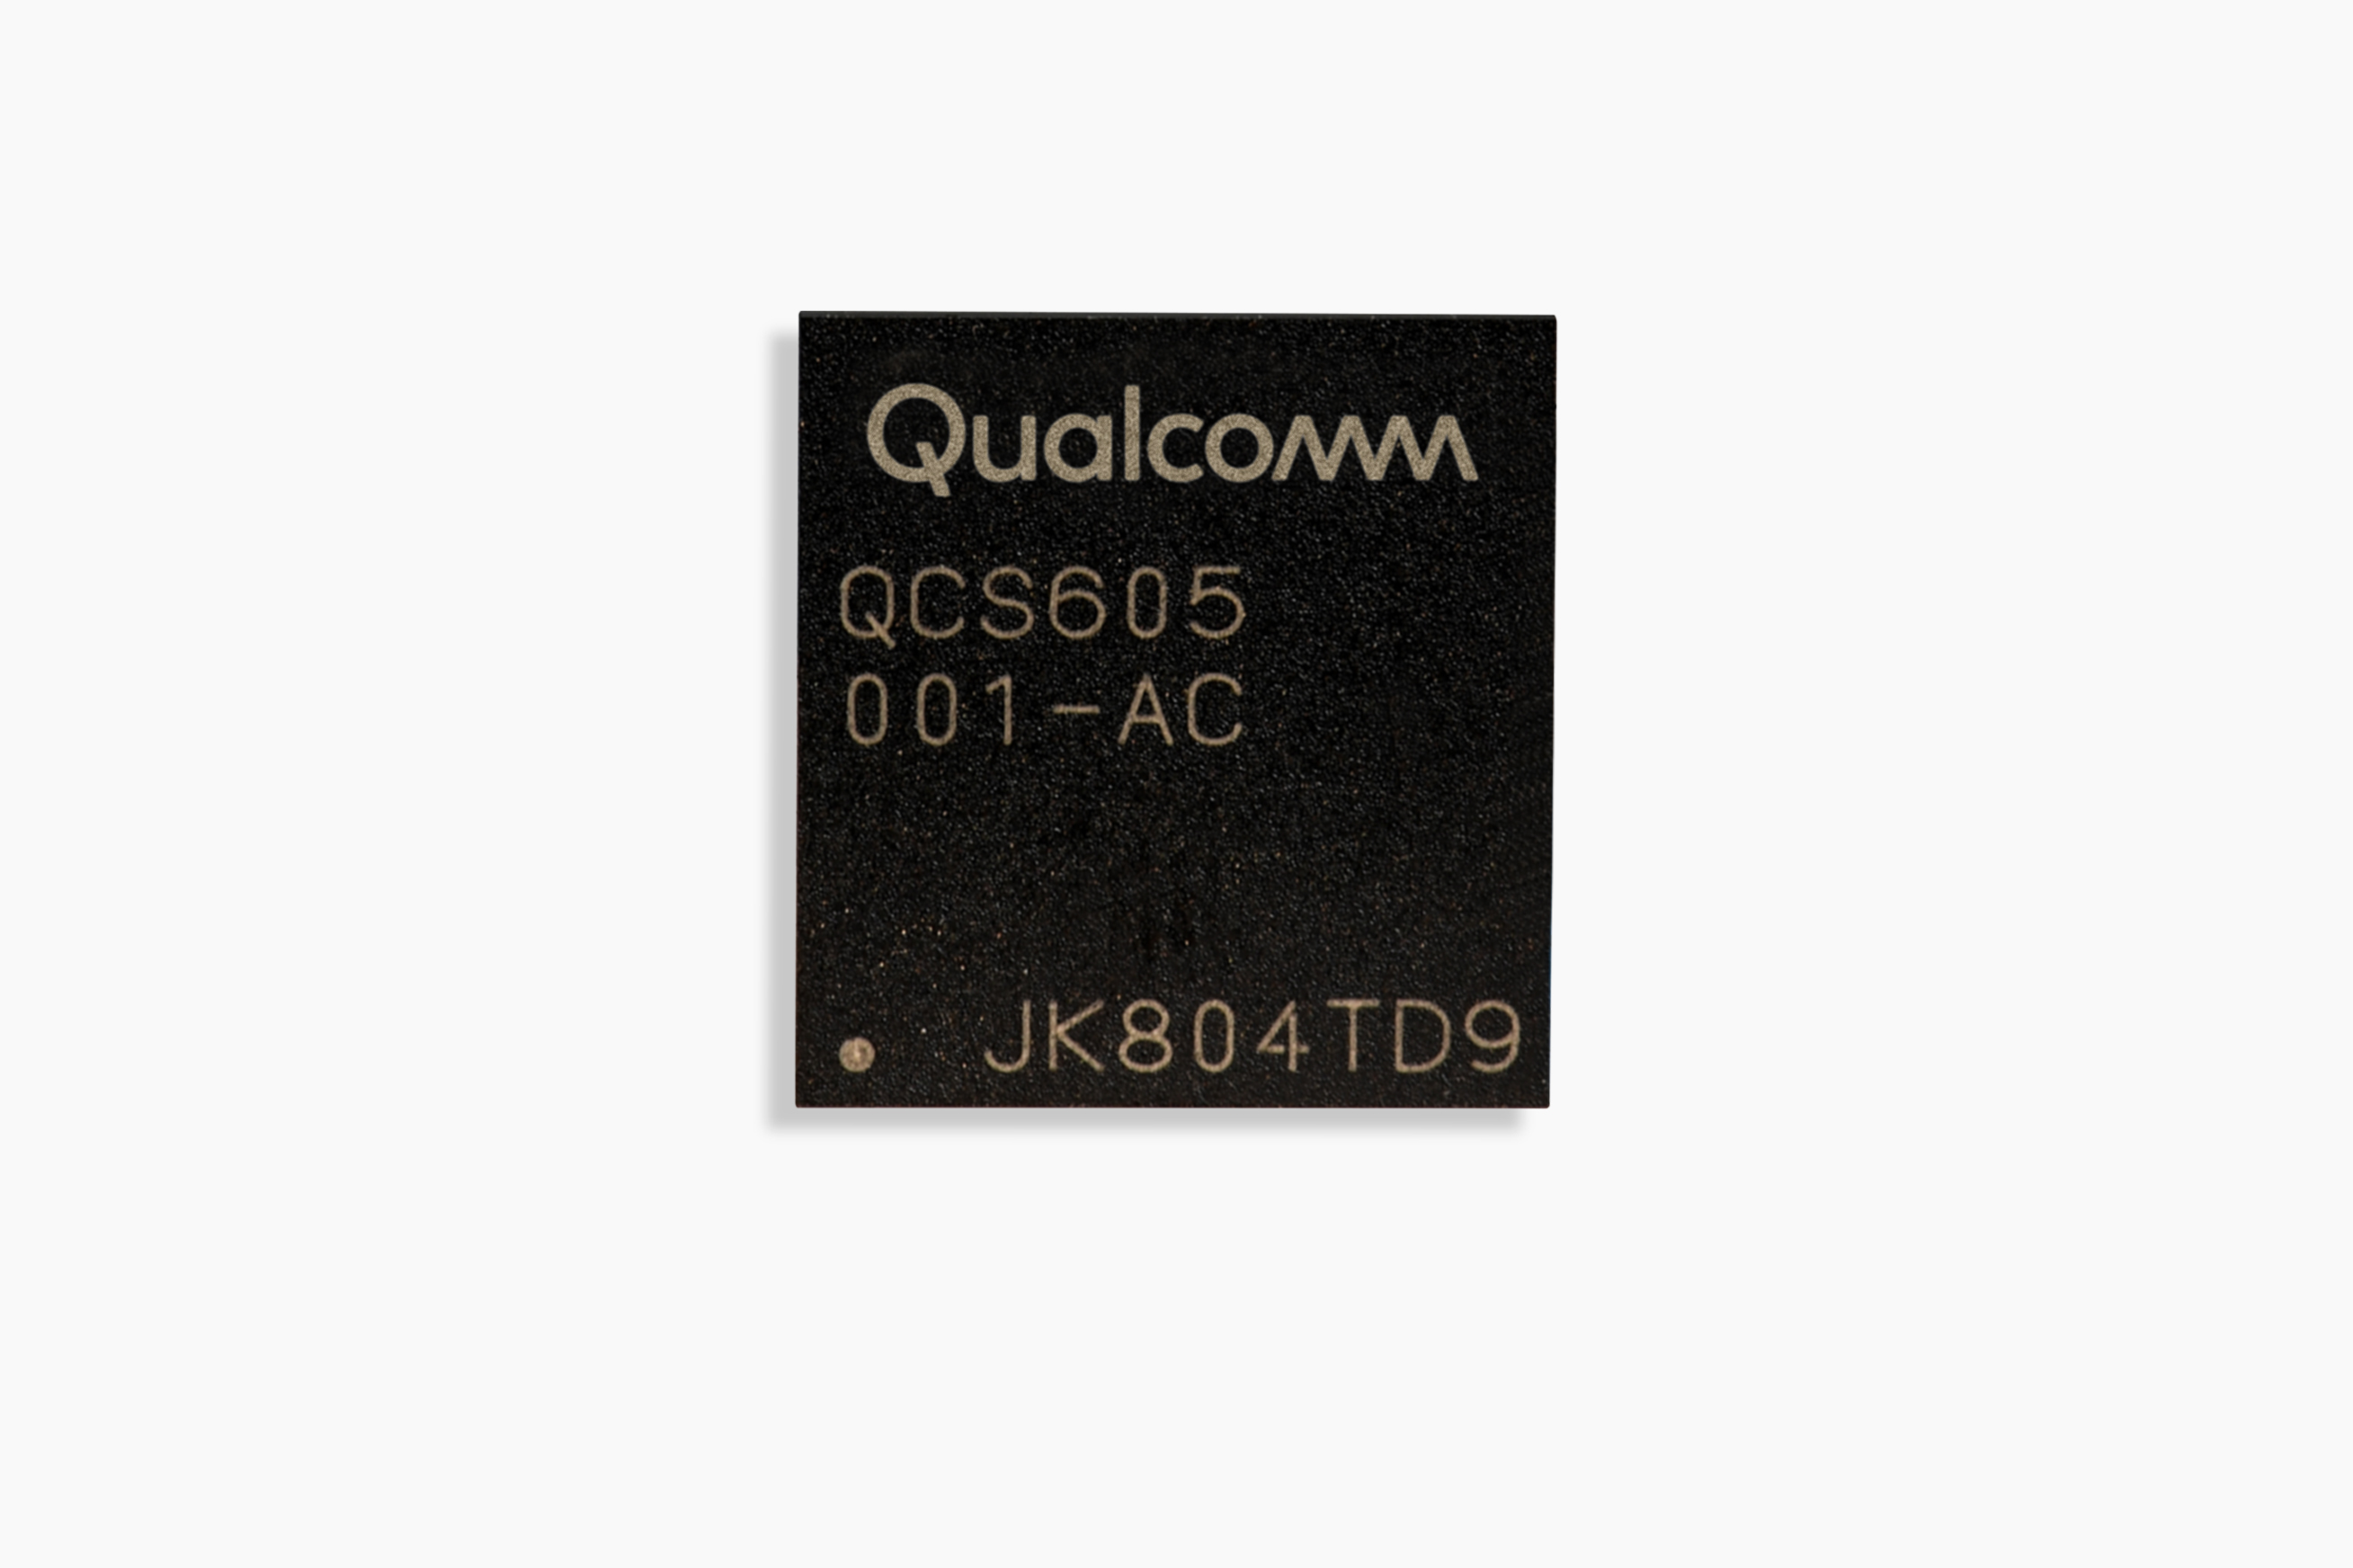 Qualcomm unveils its first chips designed for IoT gadgets